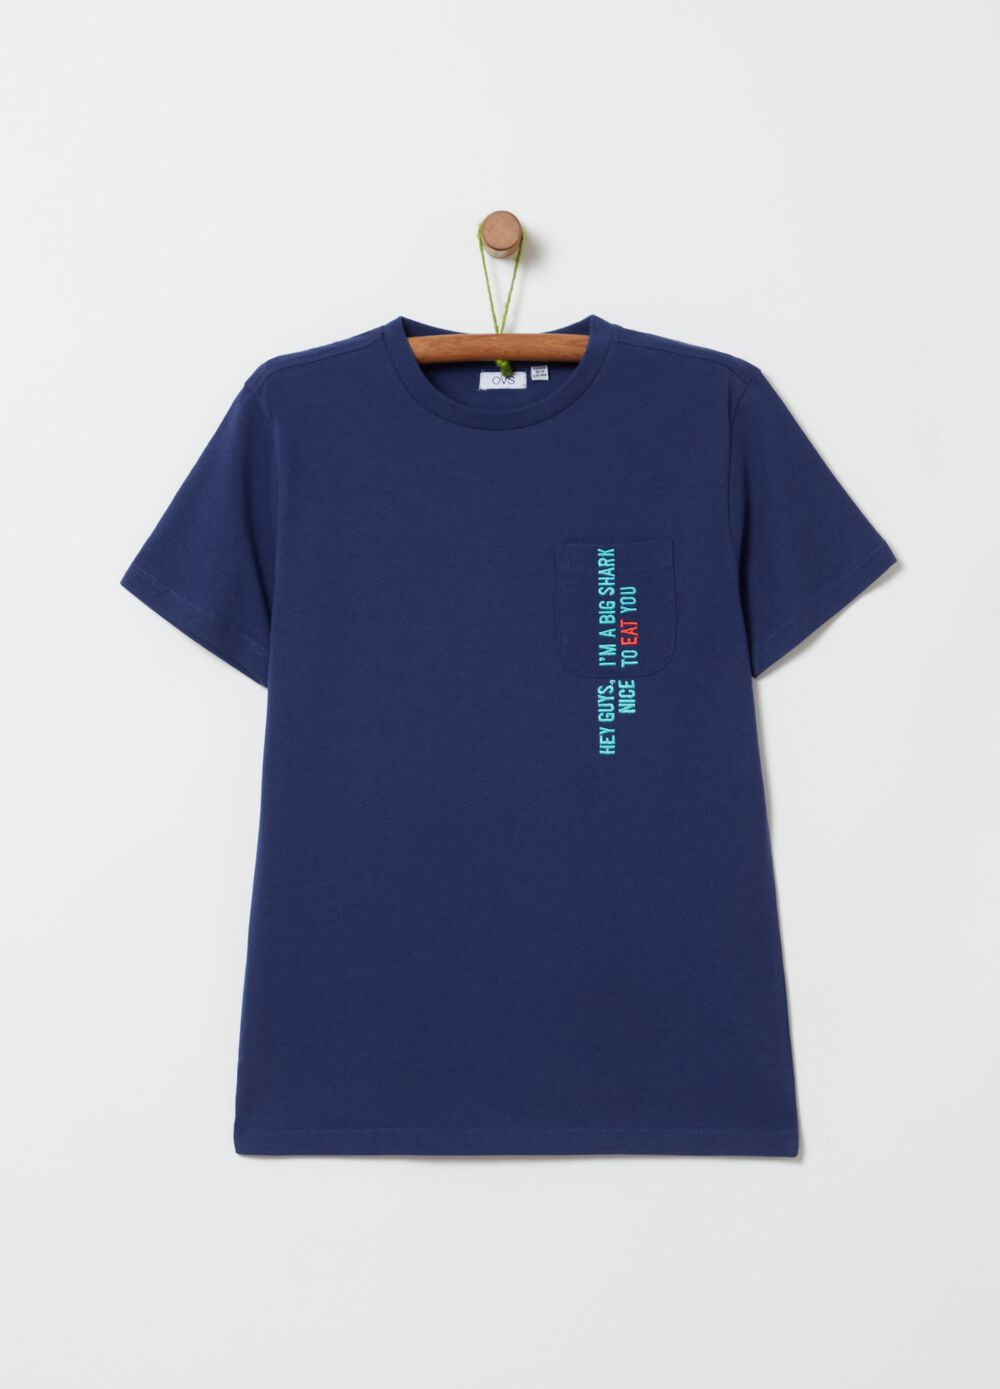 T-shirt in 100% cotton with pocket